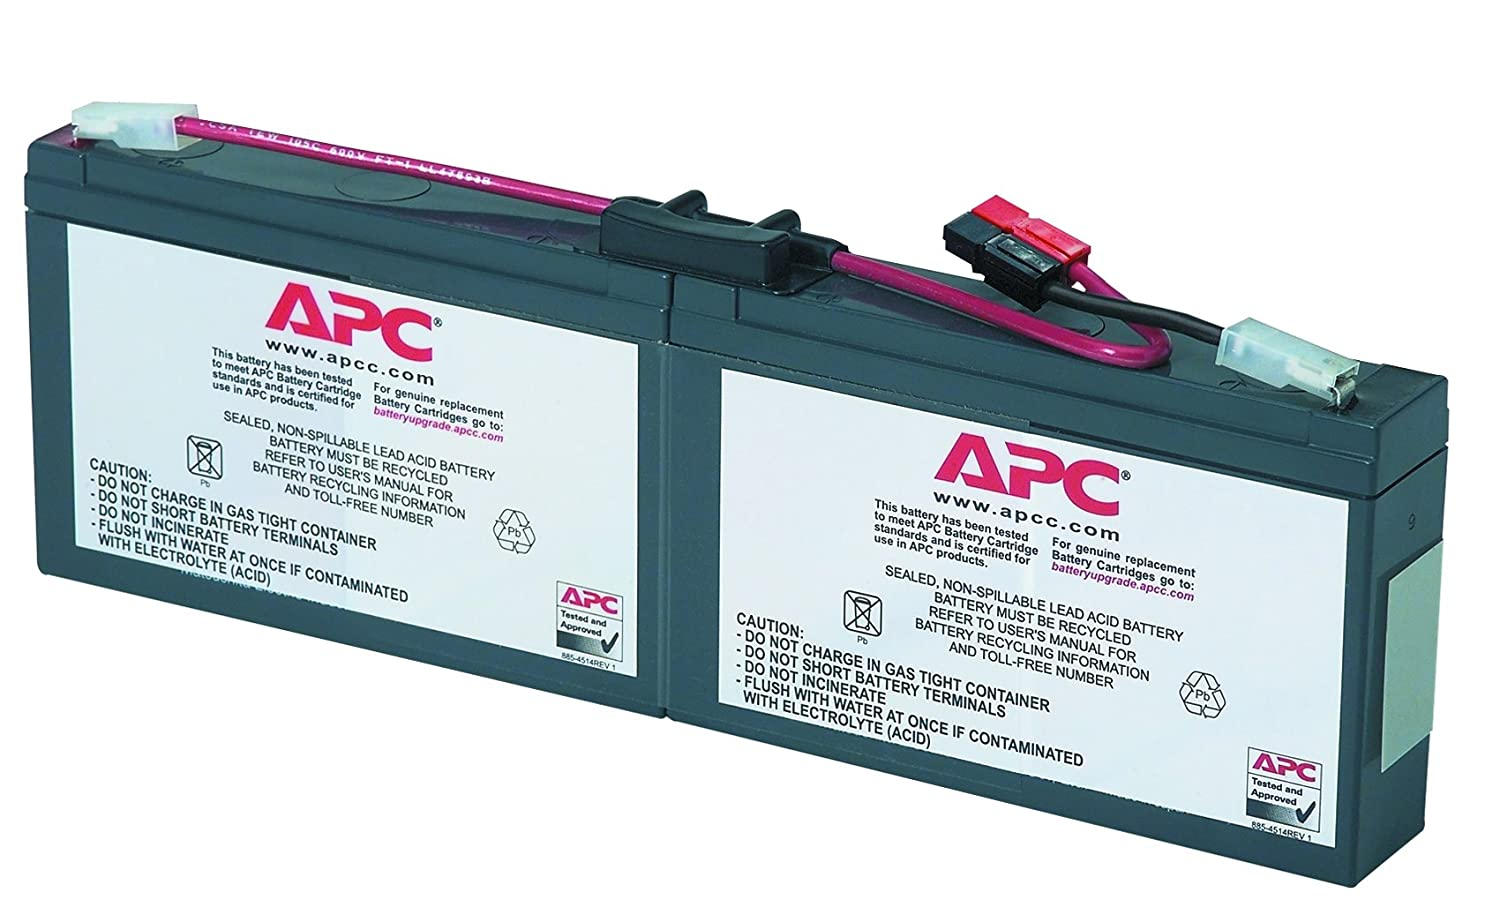 Apc Ups Battery Replacement For Smart Models Wiring Diagram Sc250rm1u Sc450rm1u And Select Others Rbc18 Home Audio Theater